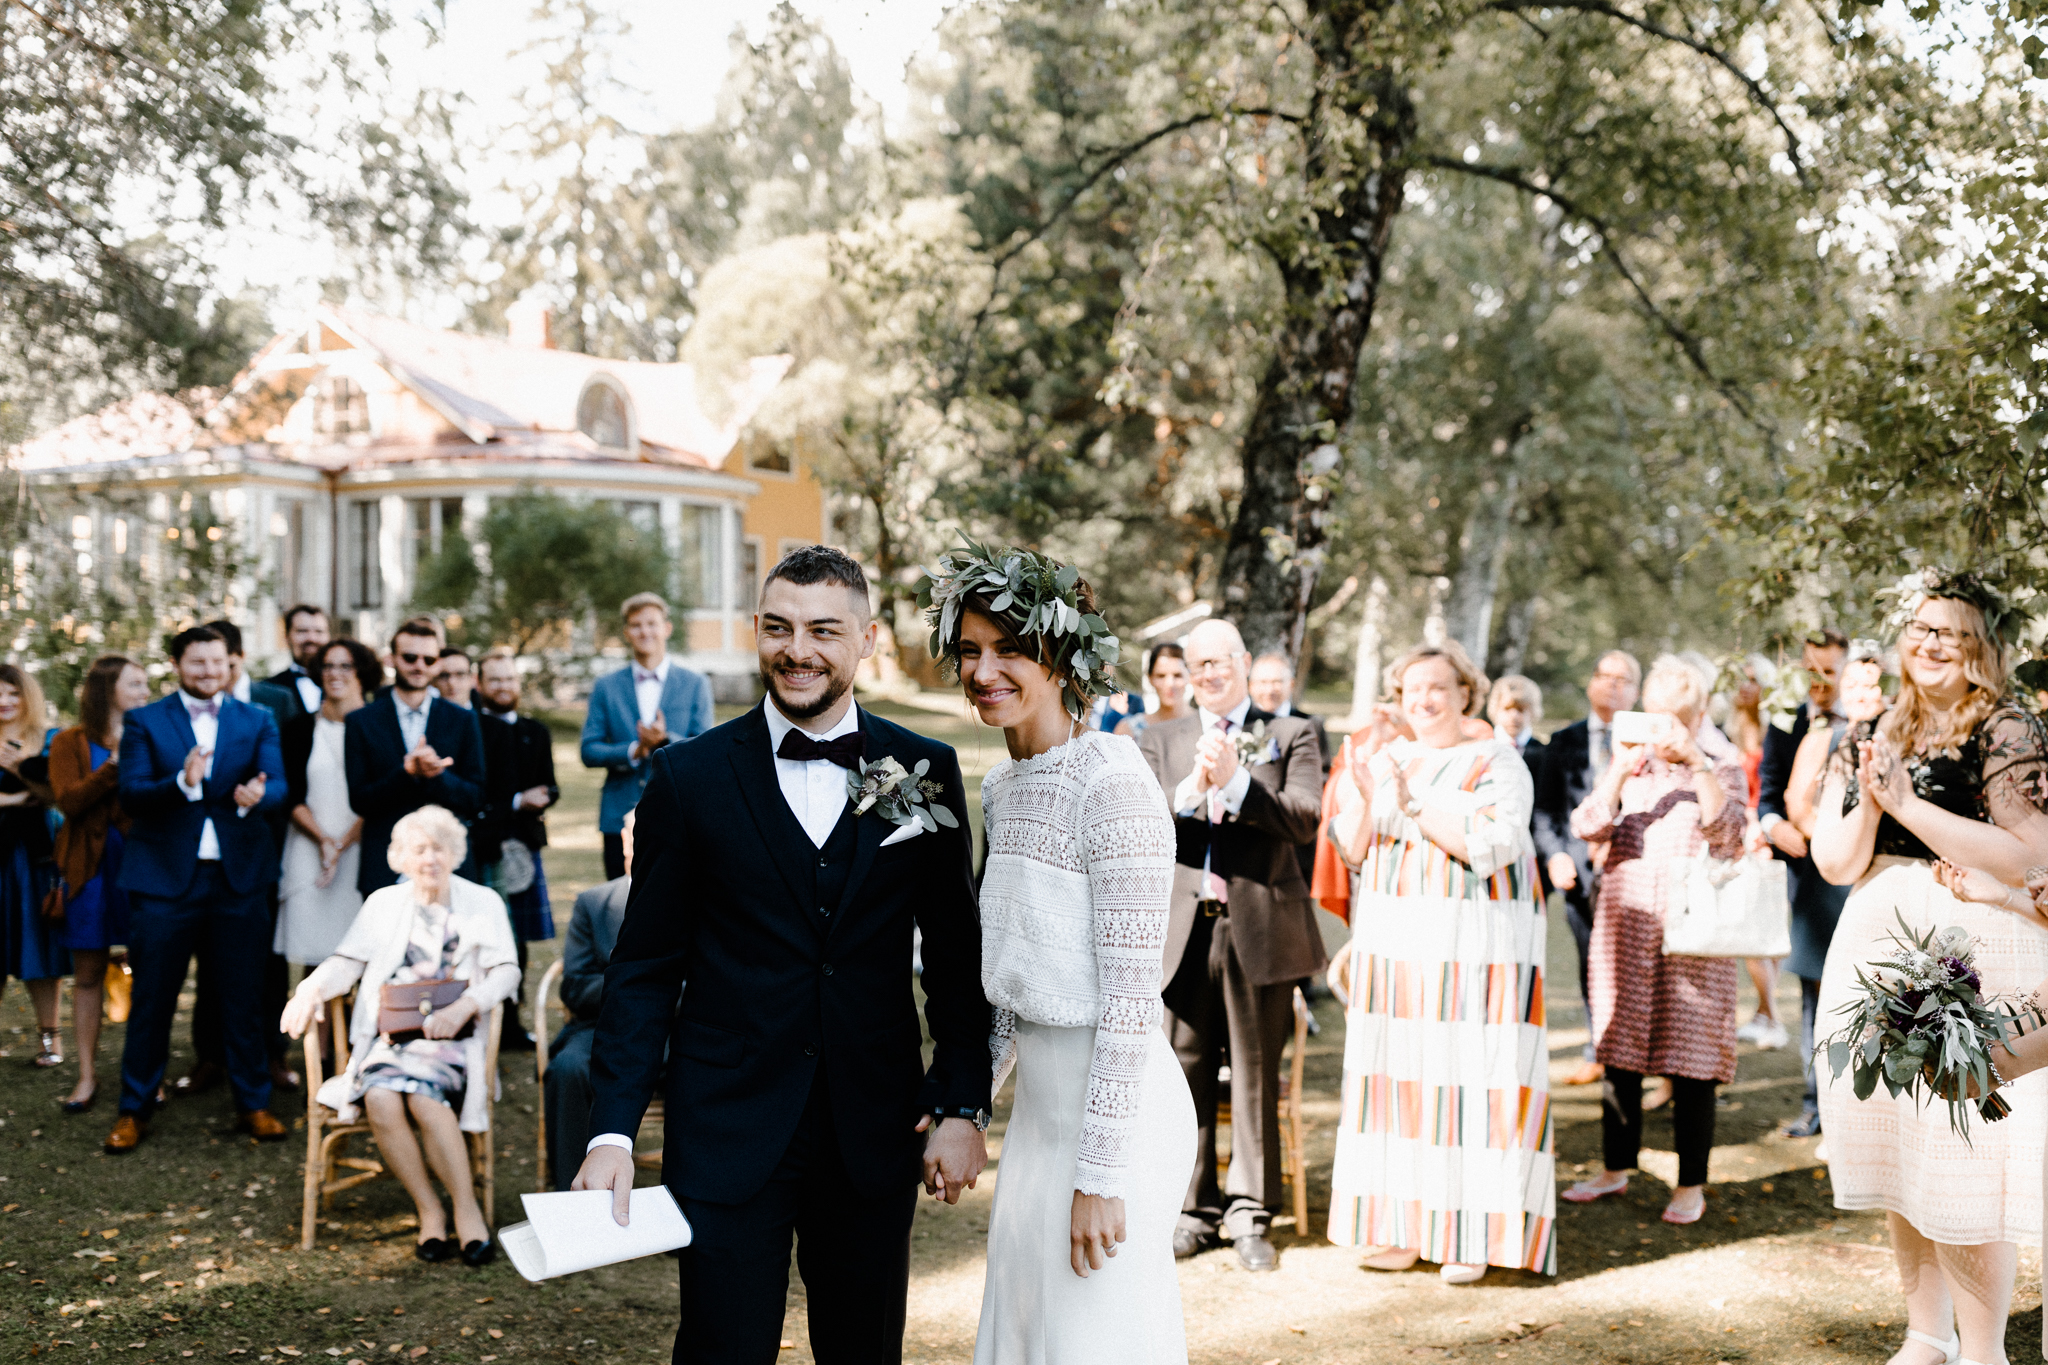 Julien + Johanna | Villa Ivan Falin | by Patrick Karkkolainen Wedding Photography-87.jpg